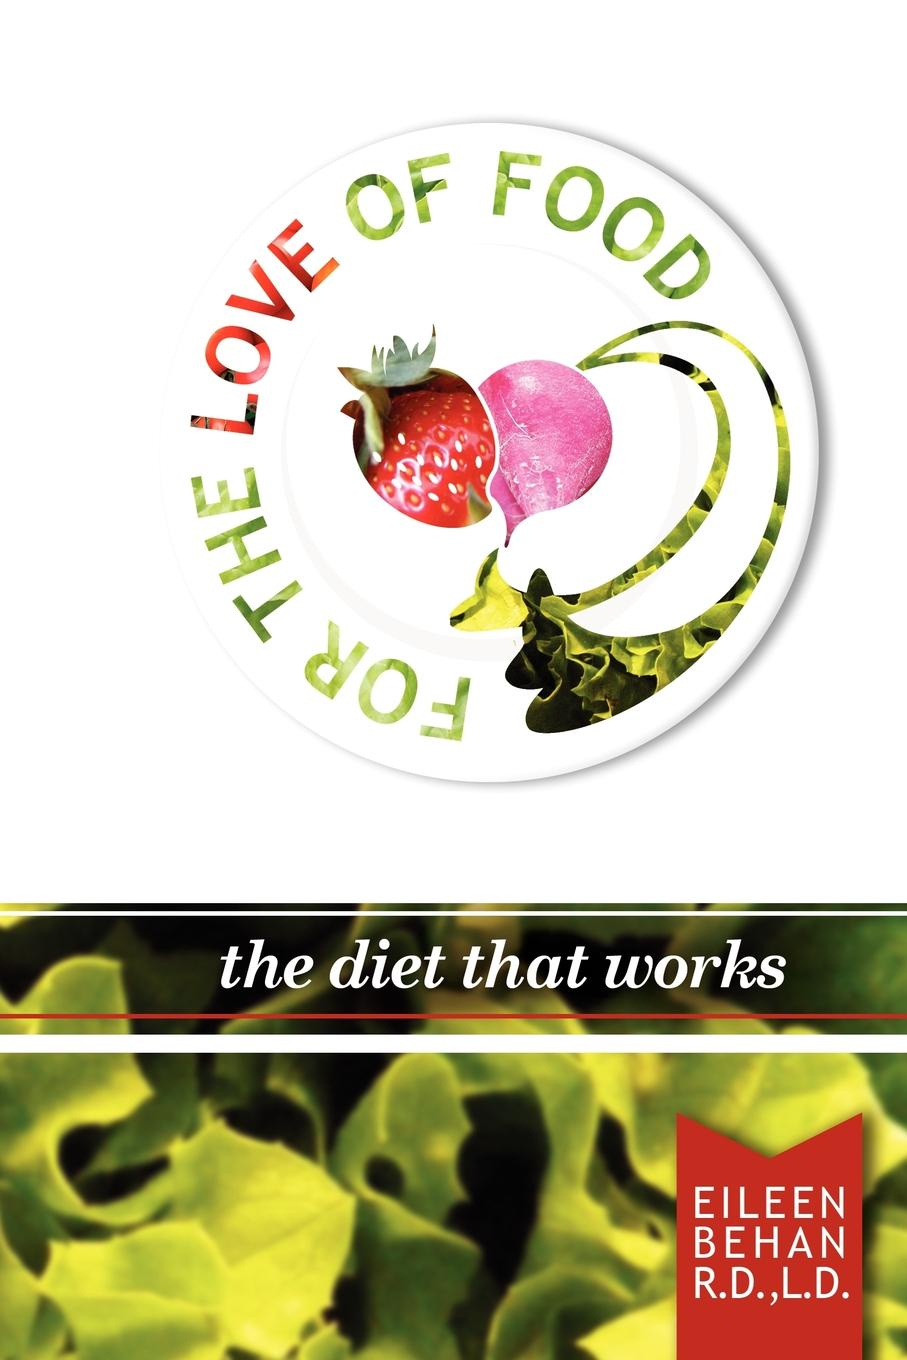 Eileen Behan For the Love of Food the Diet that Works michael burchell no excuses how you can turn any workplace into a great one